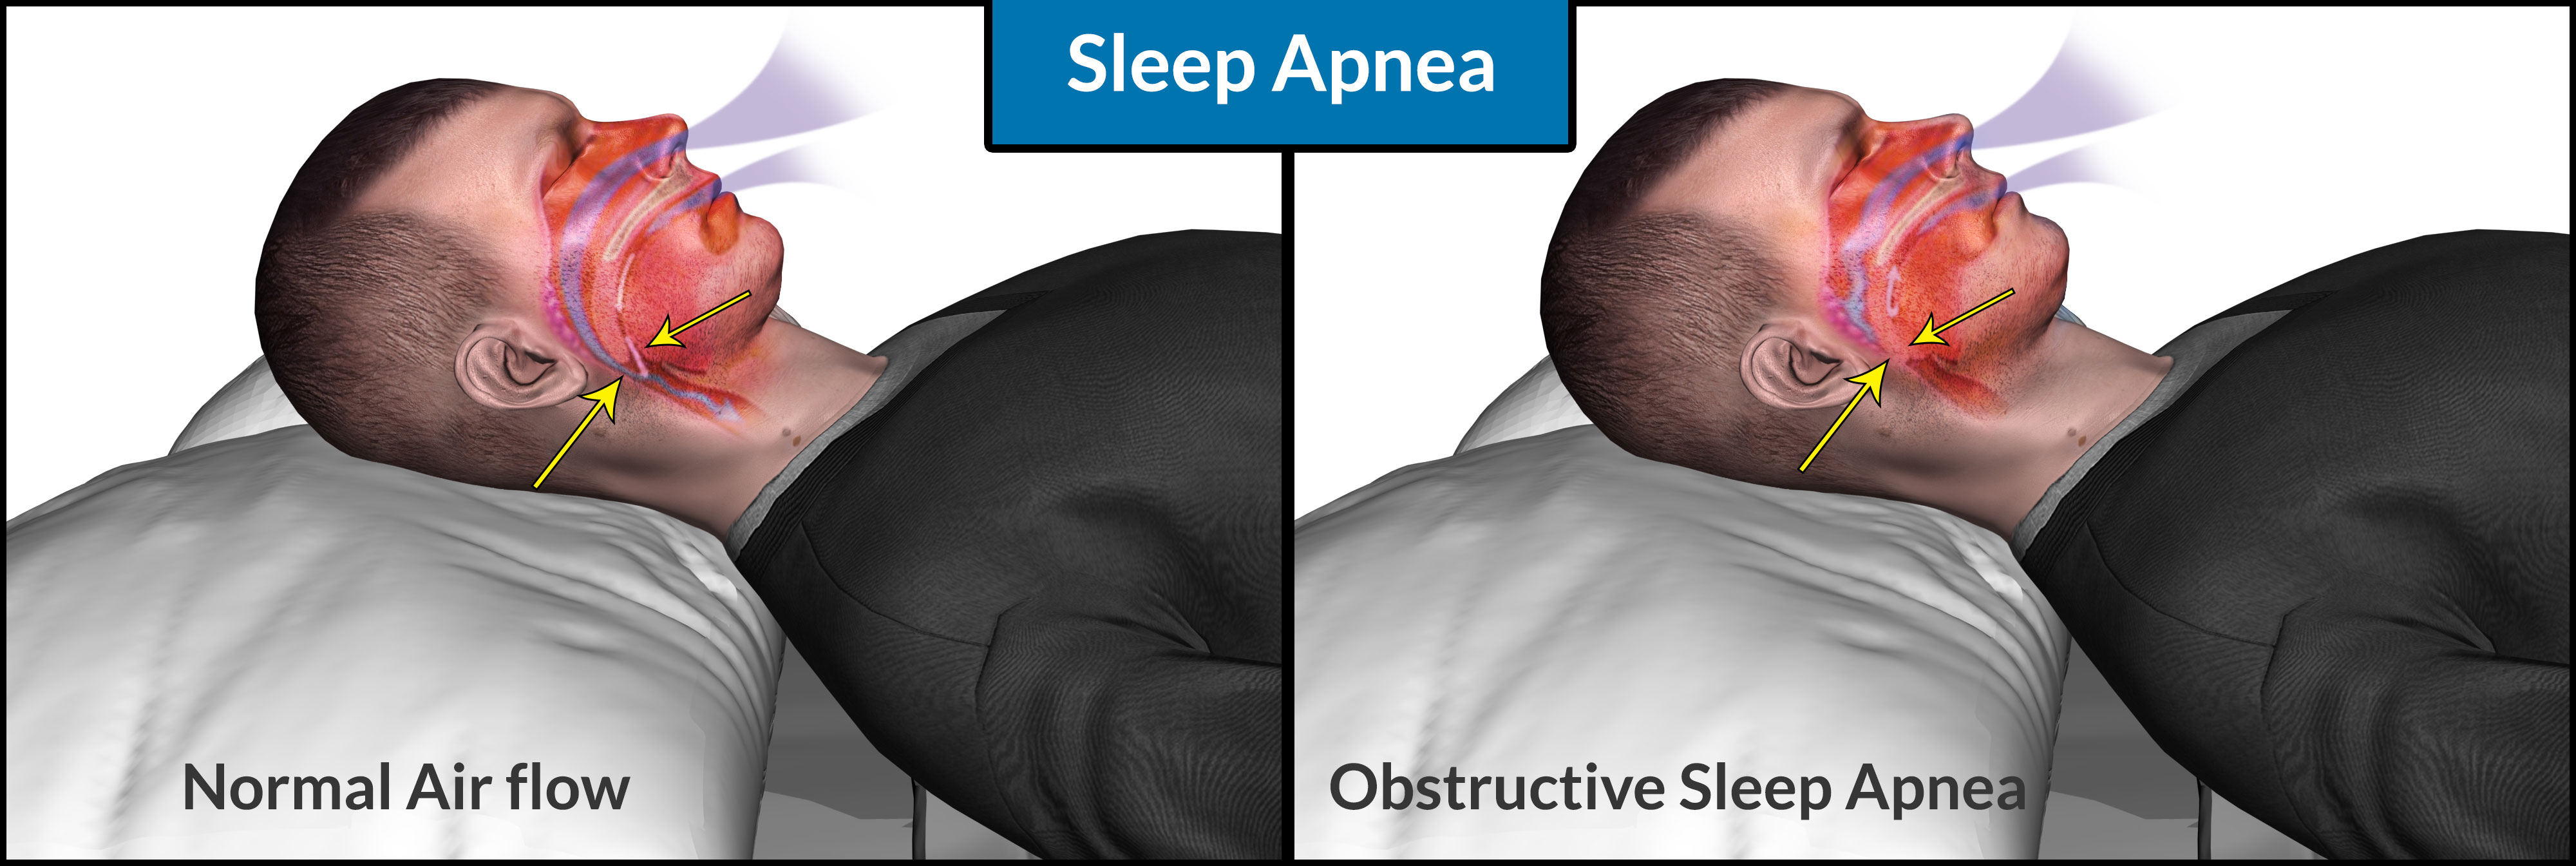 Sleep Apnea: Causes, Symptoms, Dangers, Self Treatment, CPAP Therapy Treatment, Tips